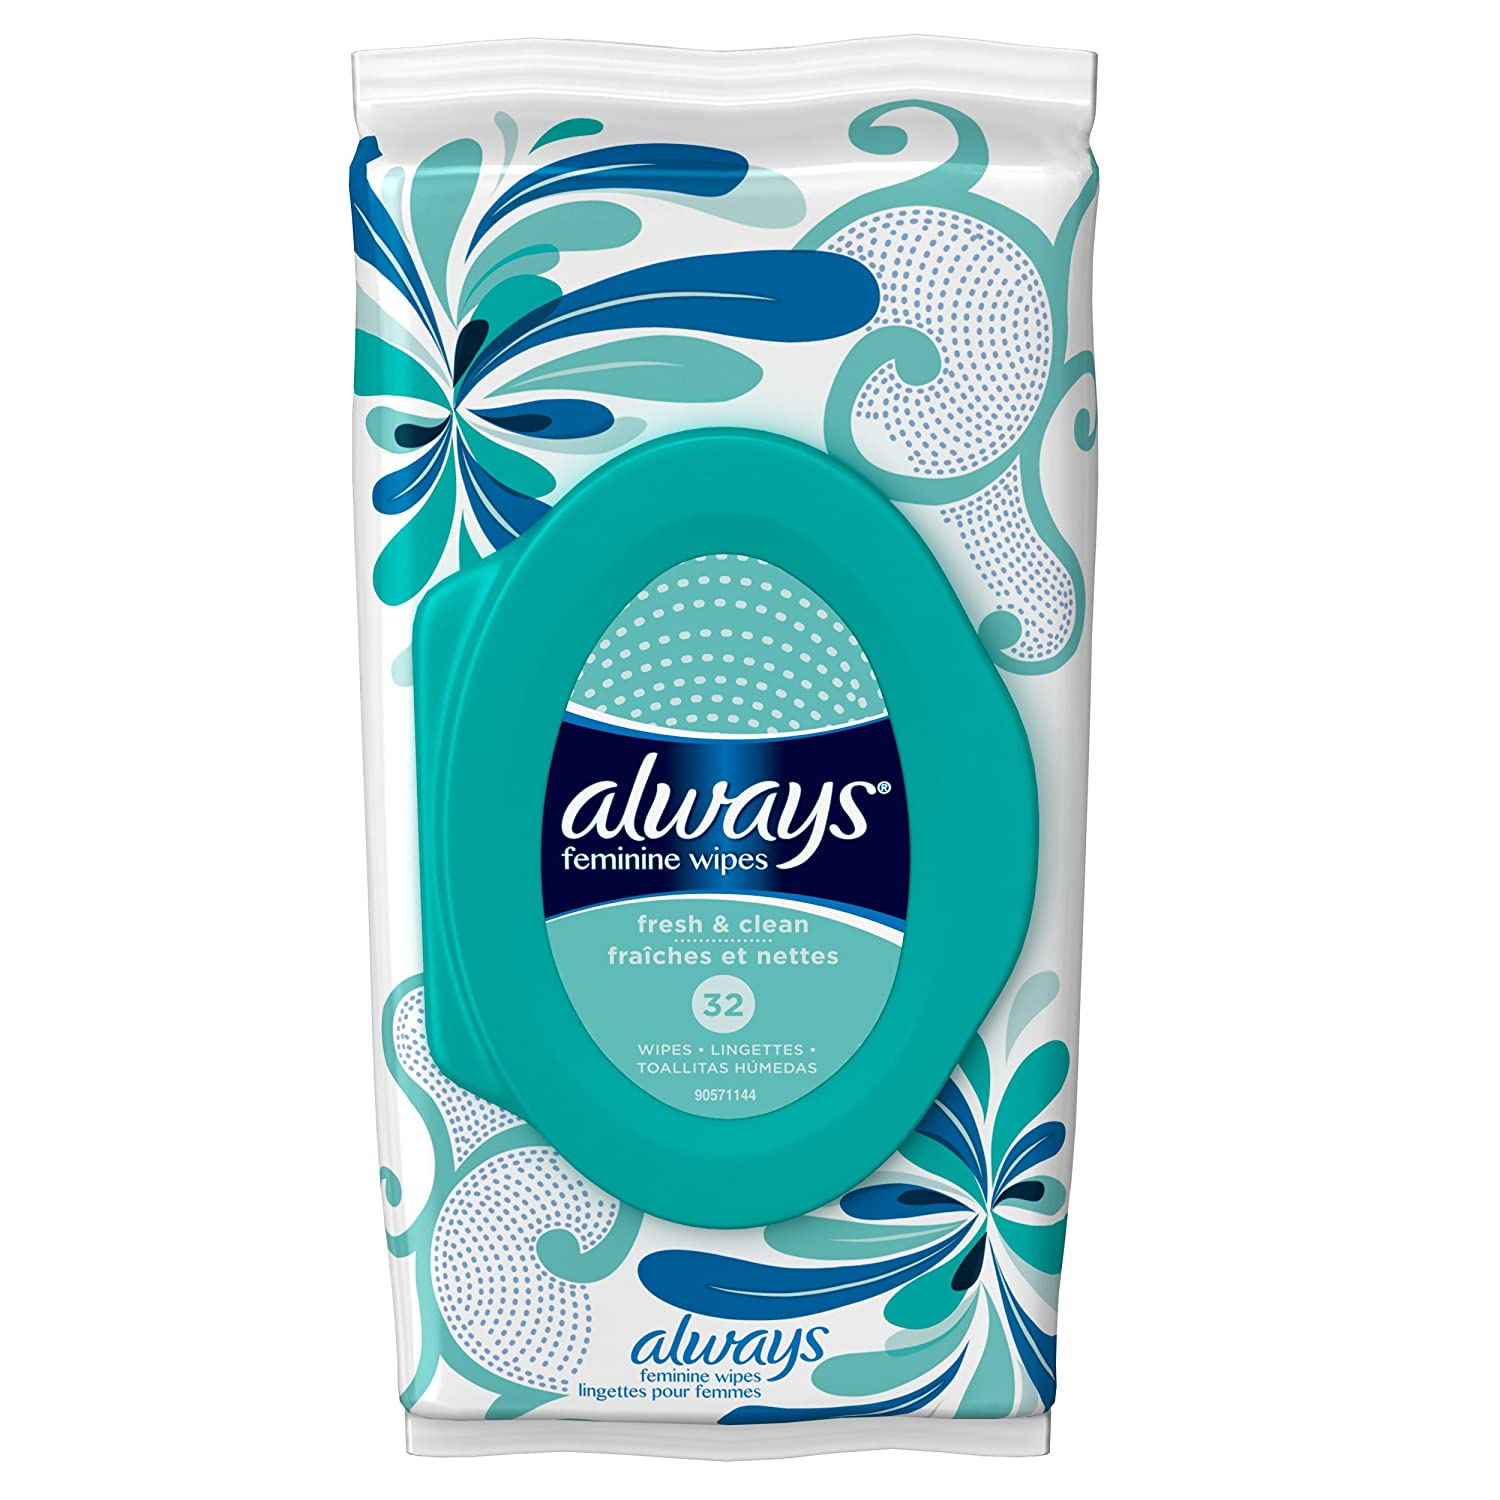 Amazon.com: Always Feminine Wipes - Fresh & Clean and Spring Blossom - 64 Wipes: Health & Personal Care